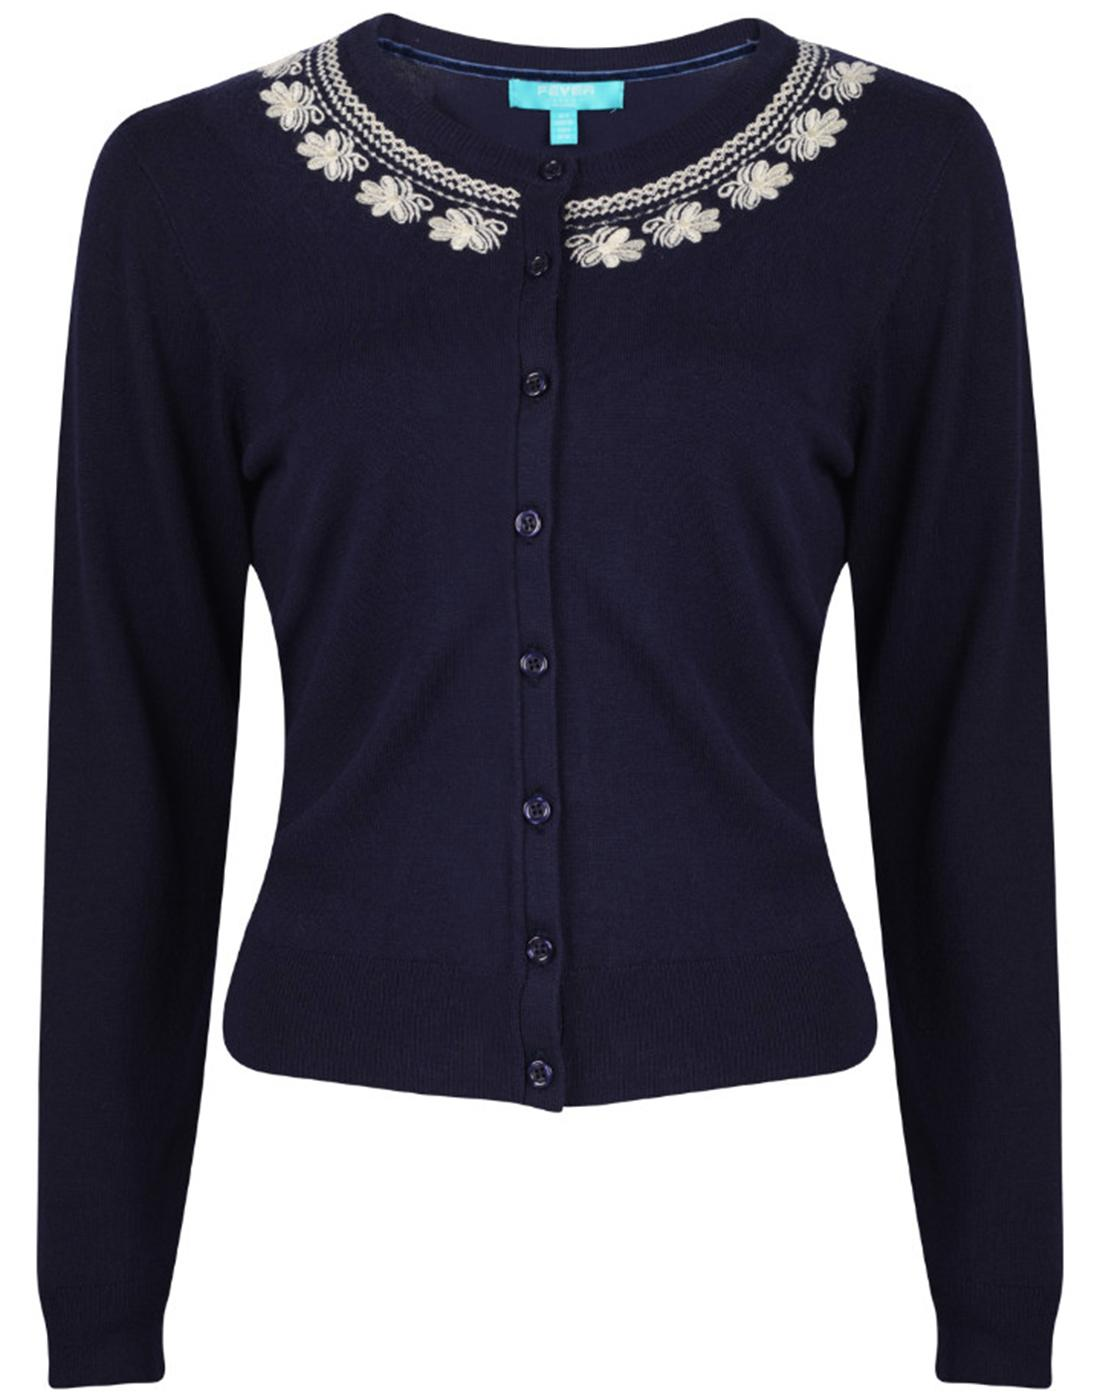 Ingrid FEVER Retro Vintage Embroidered Cardigan